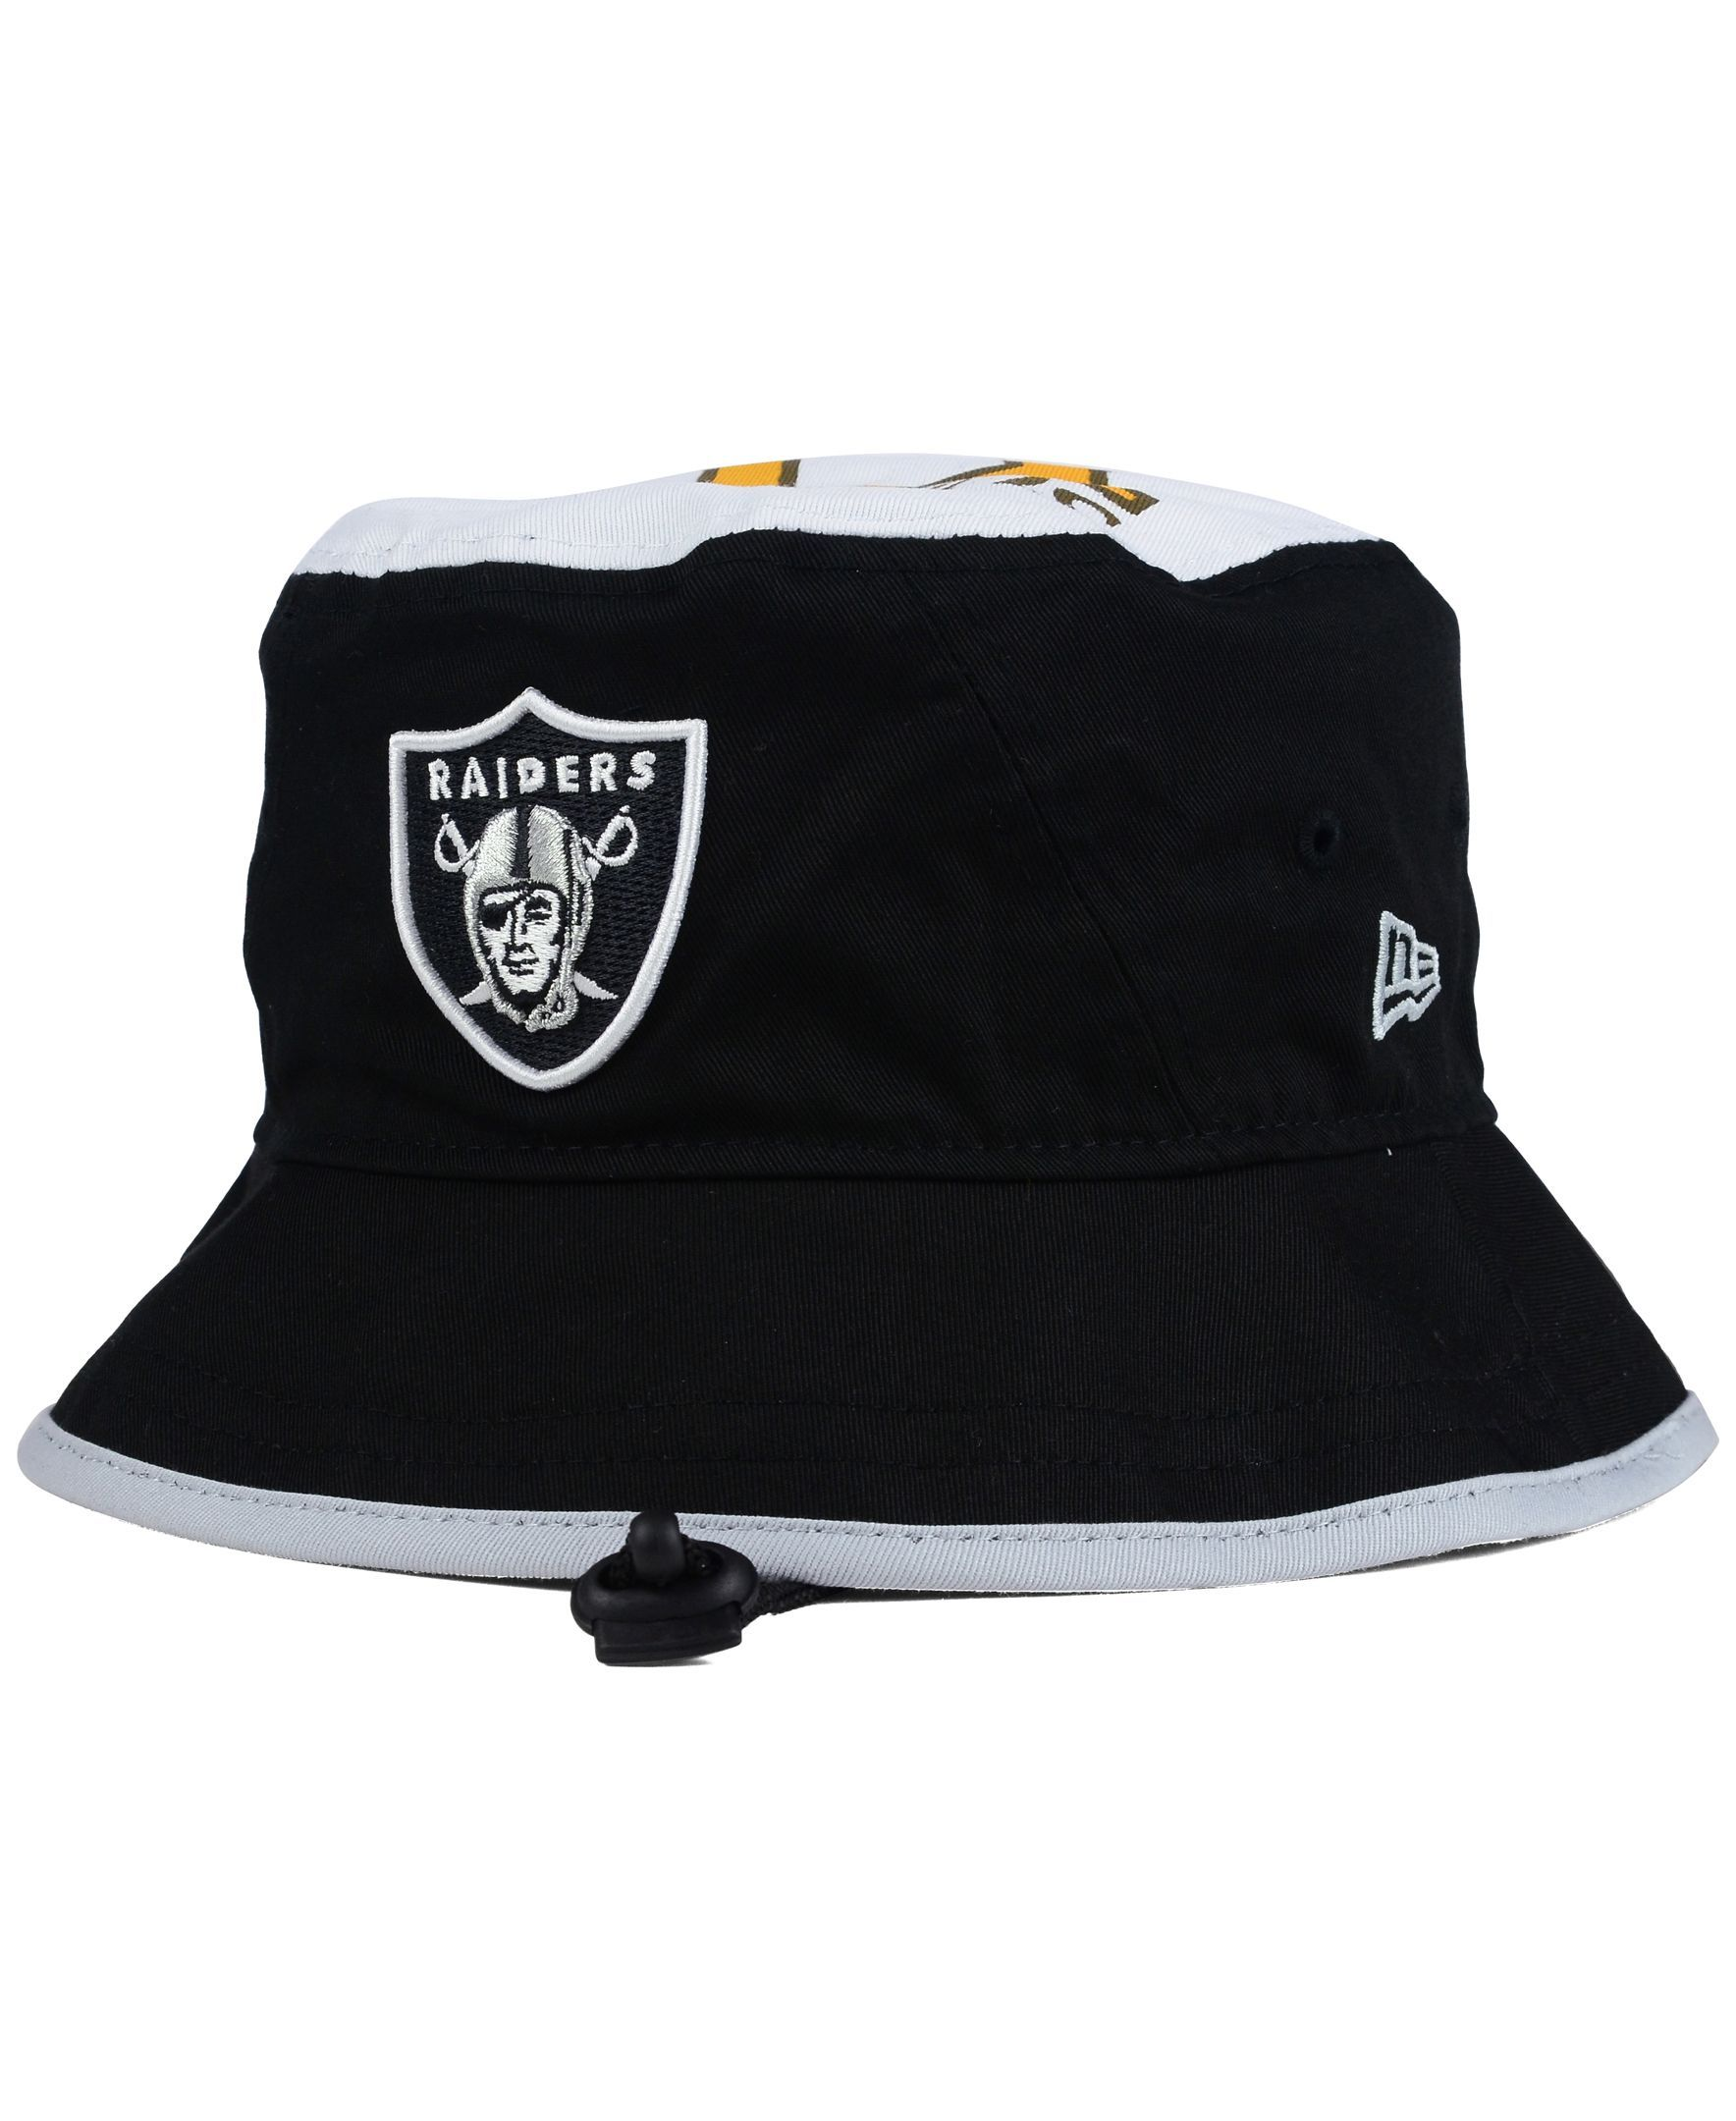 34b1866e97404 ... sale new era oakland raiders traveler bucket hat 971e1 478ef